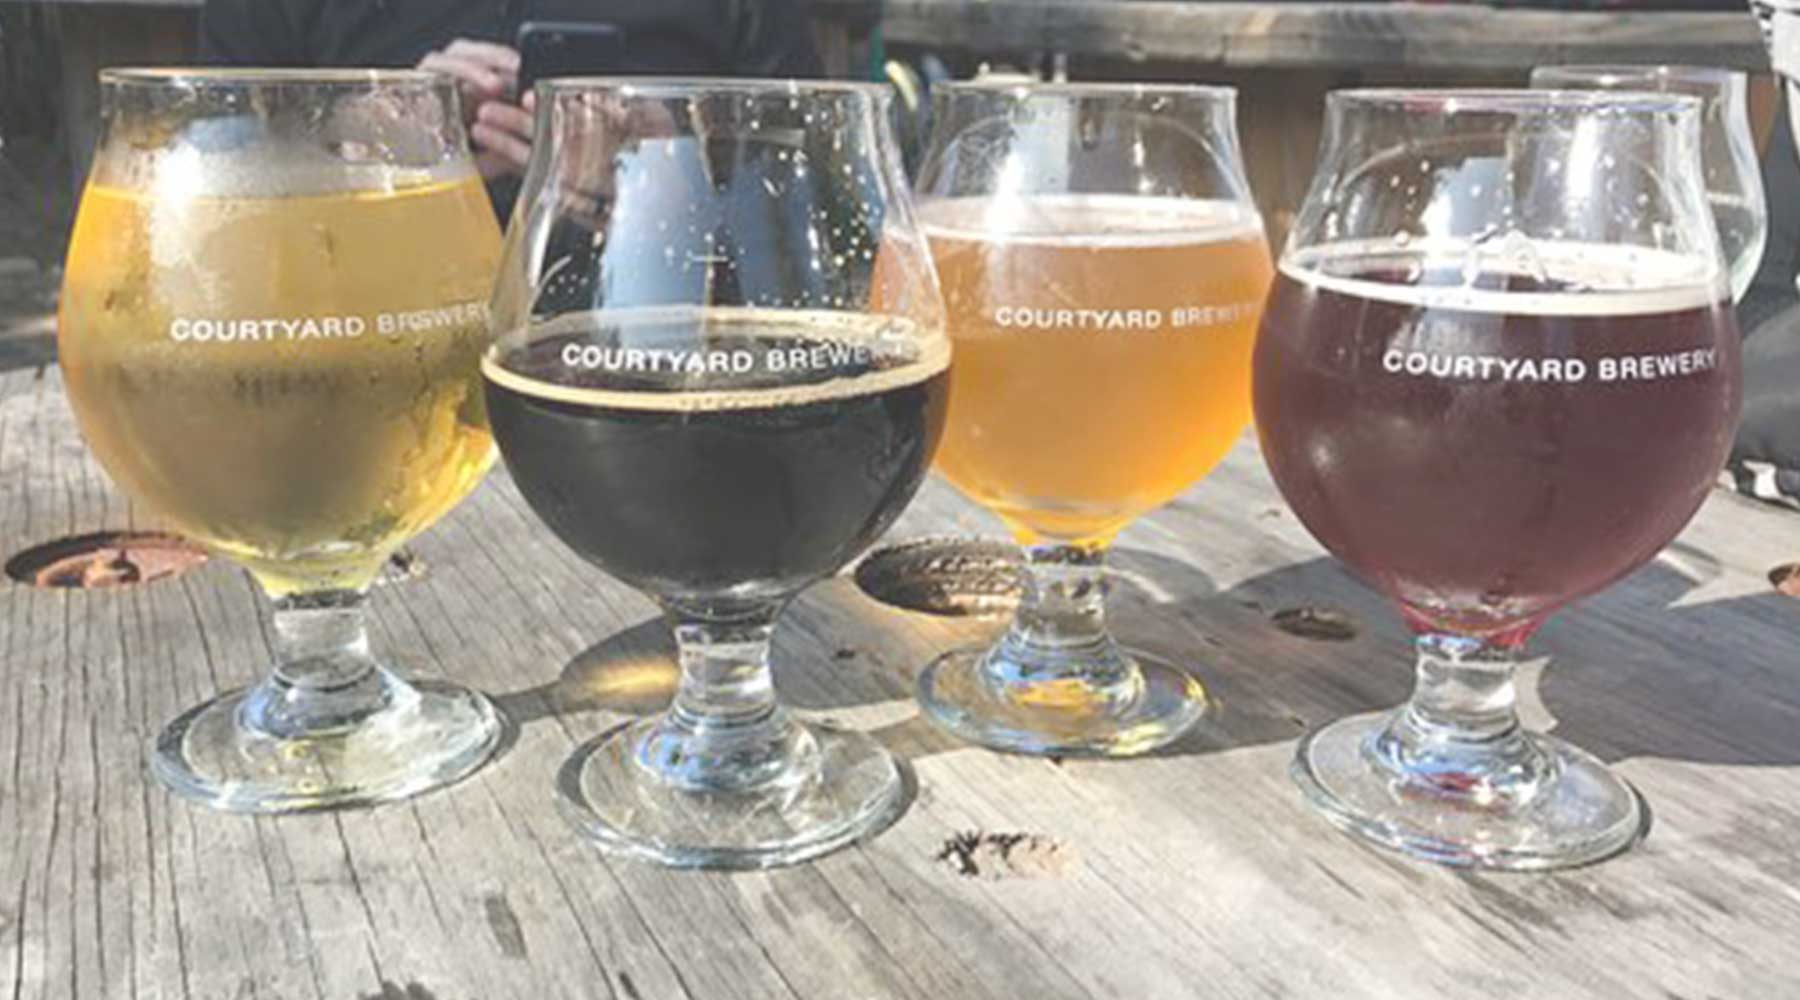 Courtyard Brewery | Just Wine